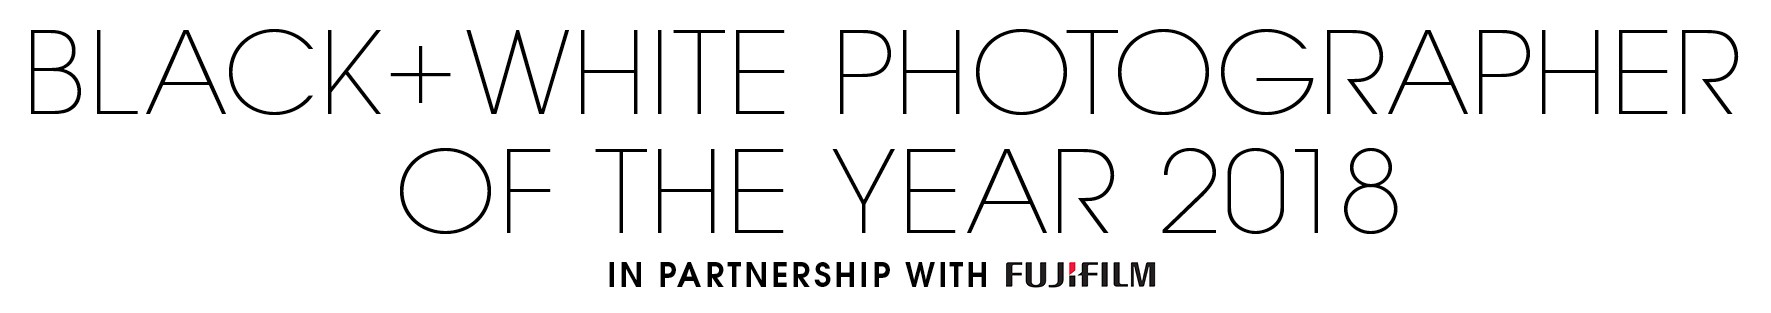 Black+White Photographer of the Year 2018 - logo